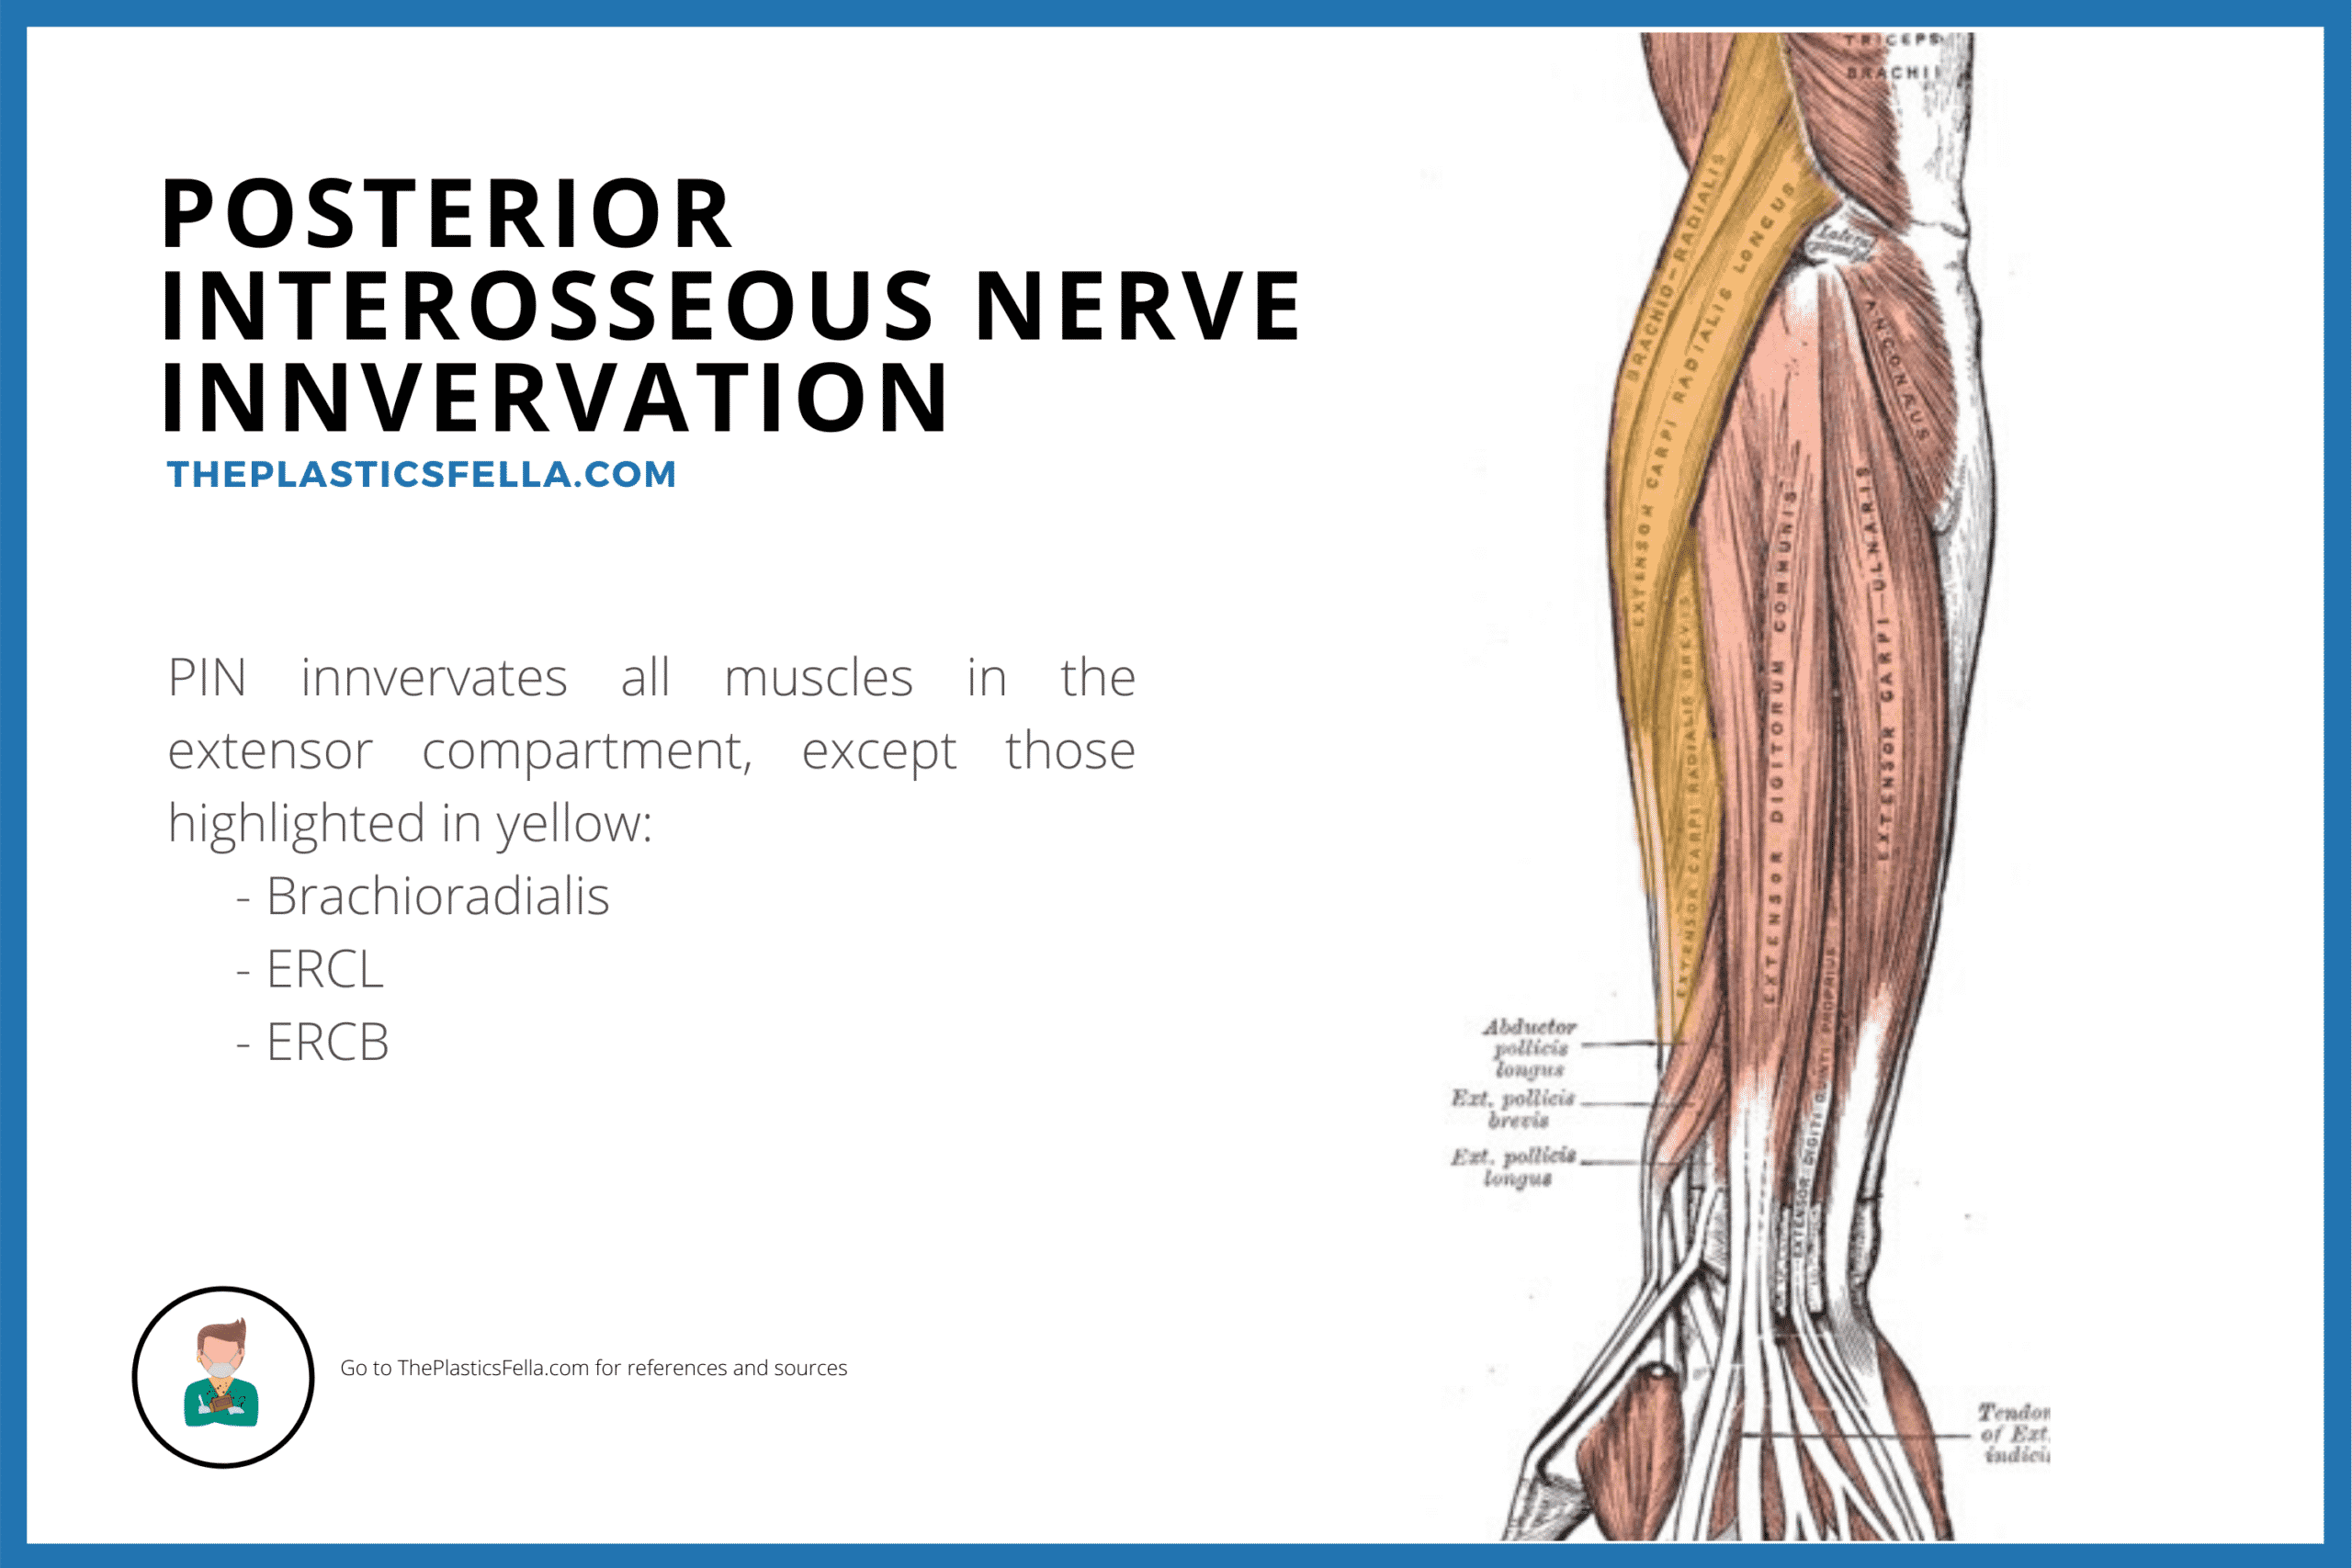 Muscles Innervated by the Posterior Interosseous Nerve (Palsy, Syndrome)